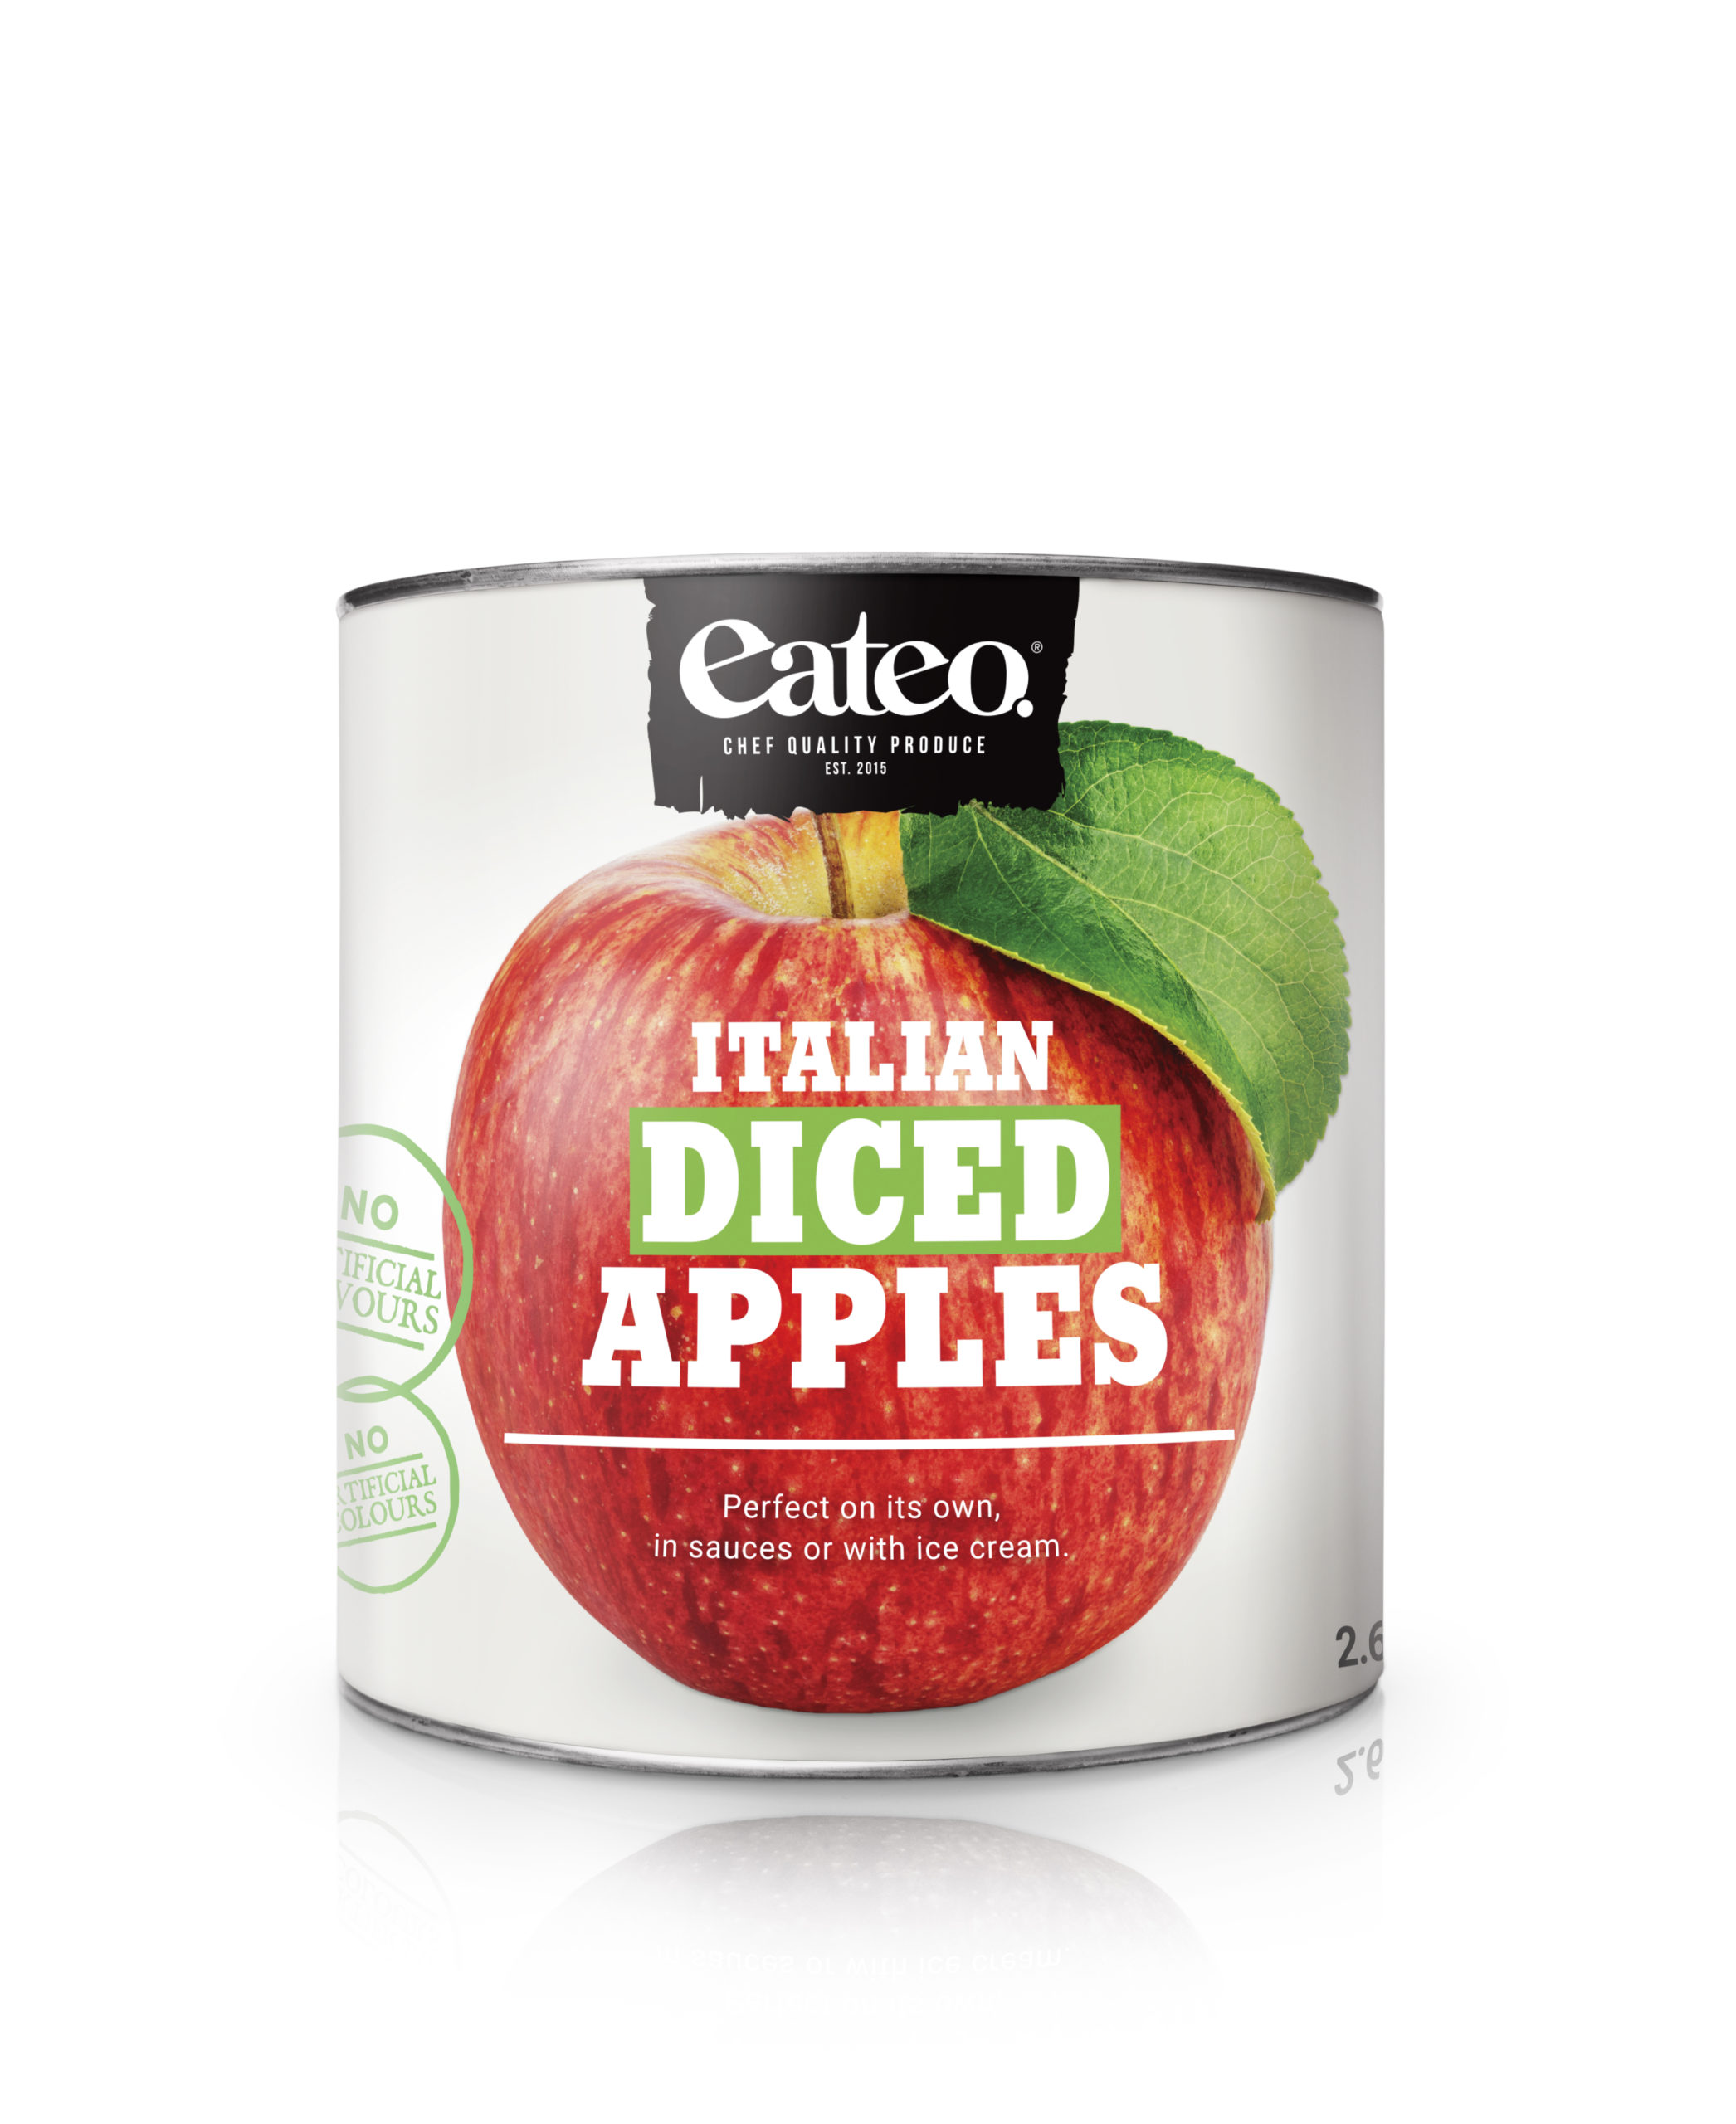 Italian Diced Apples